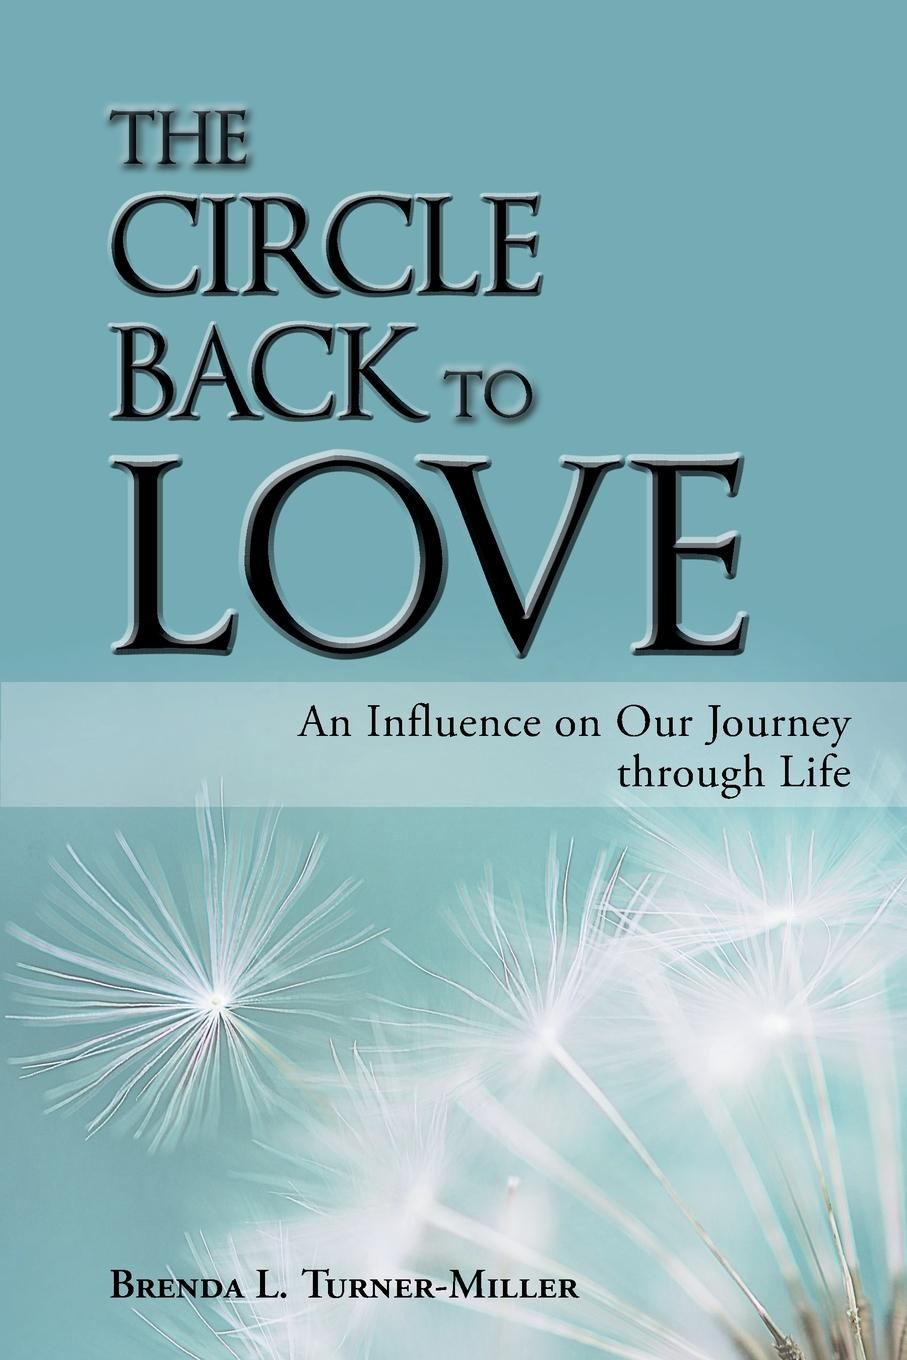 Brenda L. Turner-Miller The Circle Back to Love. An Influence on Our Journey Through Life joe l lewis essence of the christian journey faith hope and love these three